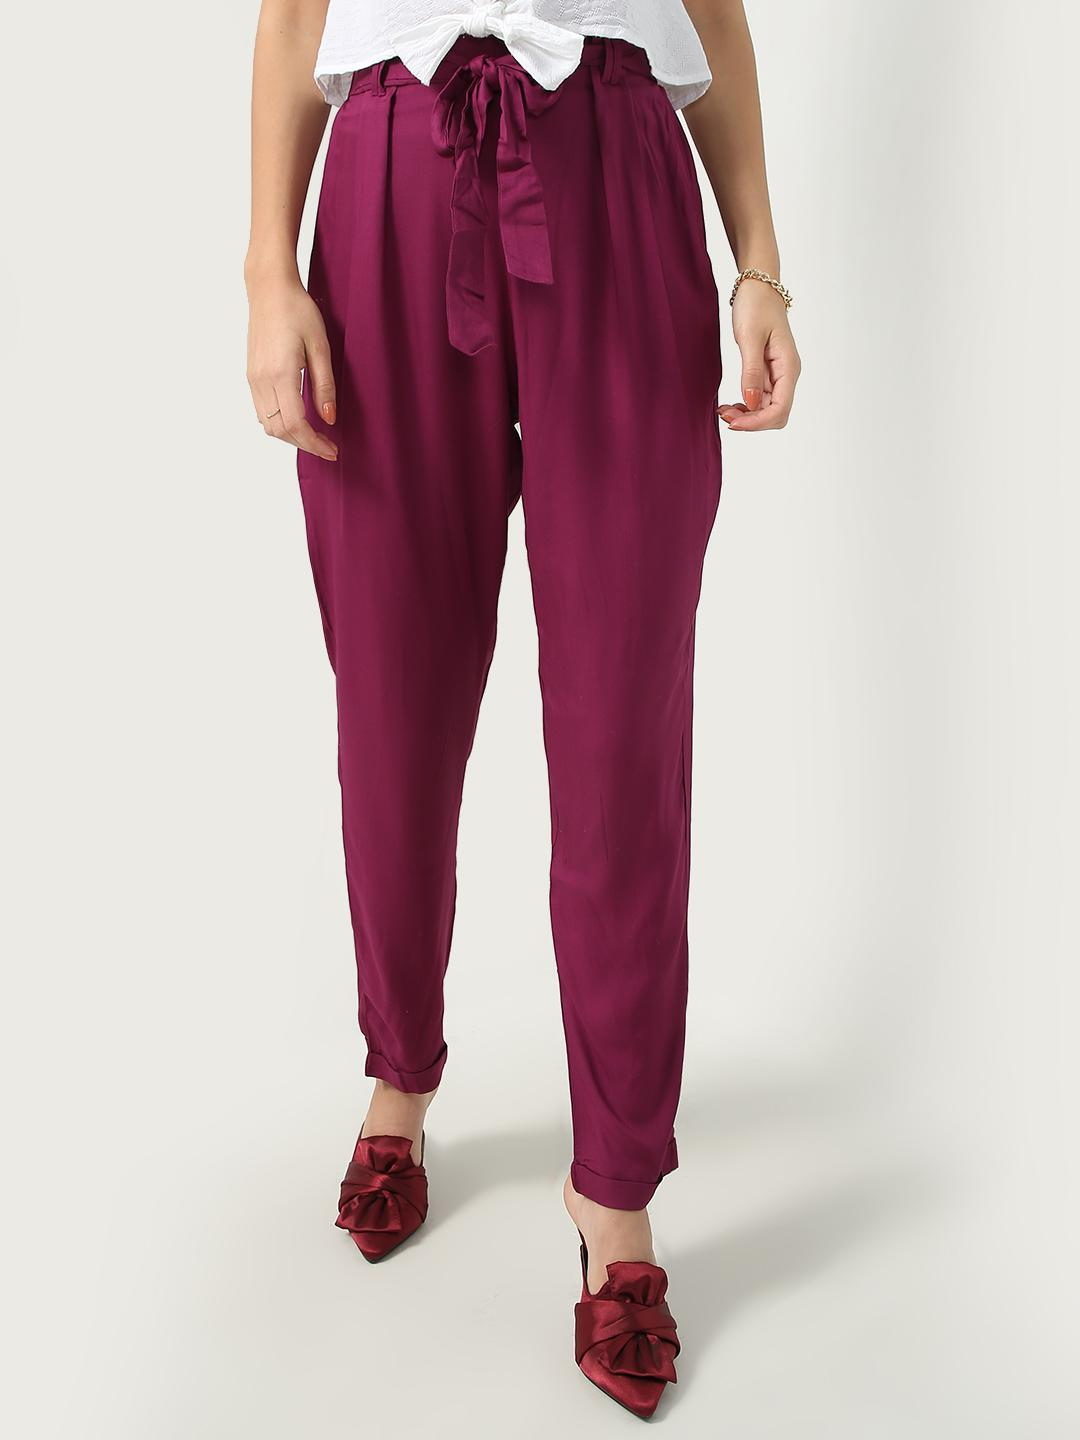 Oxolloxo Pink Tie Knot Waist Track Pant 1